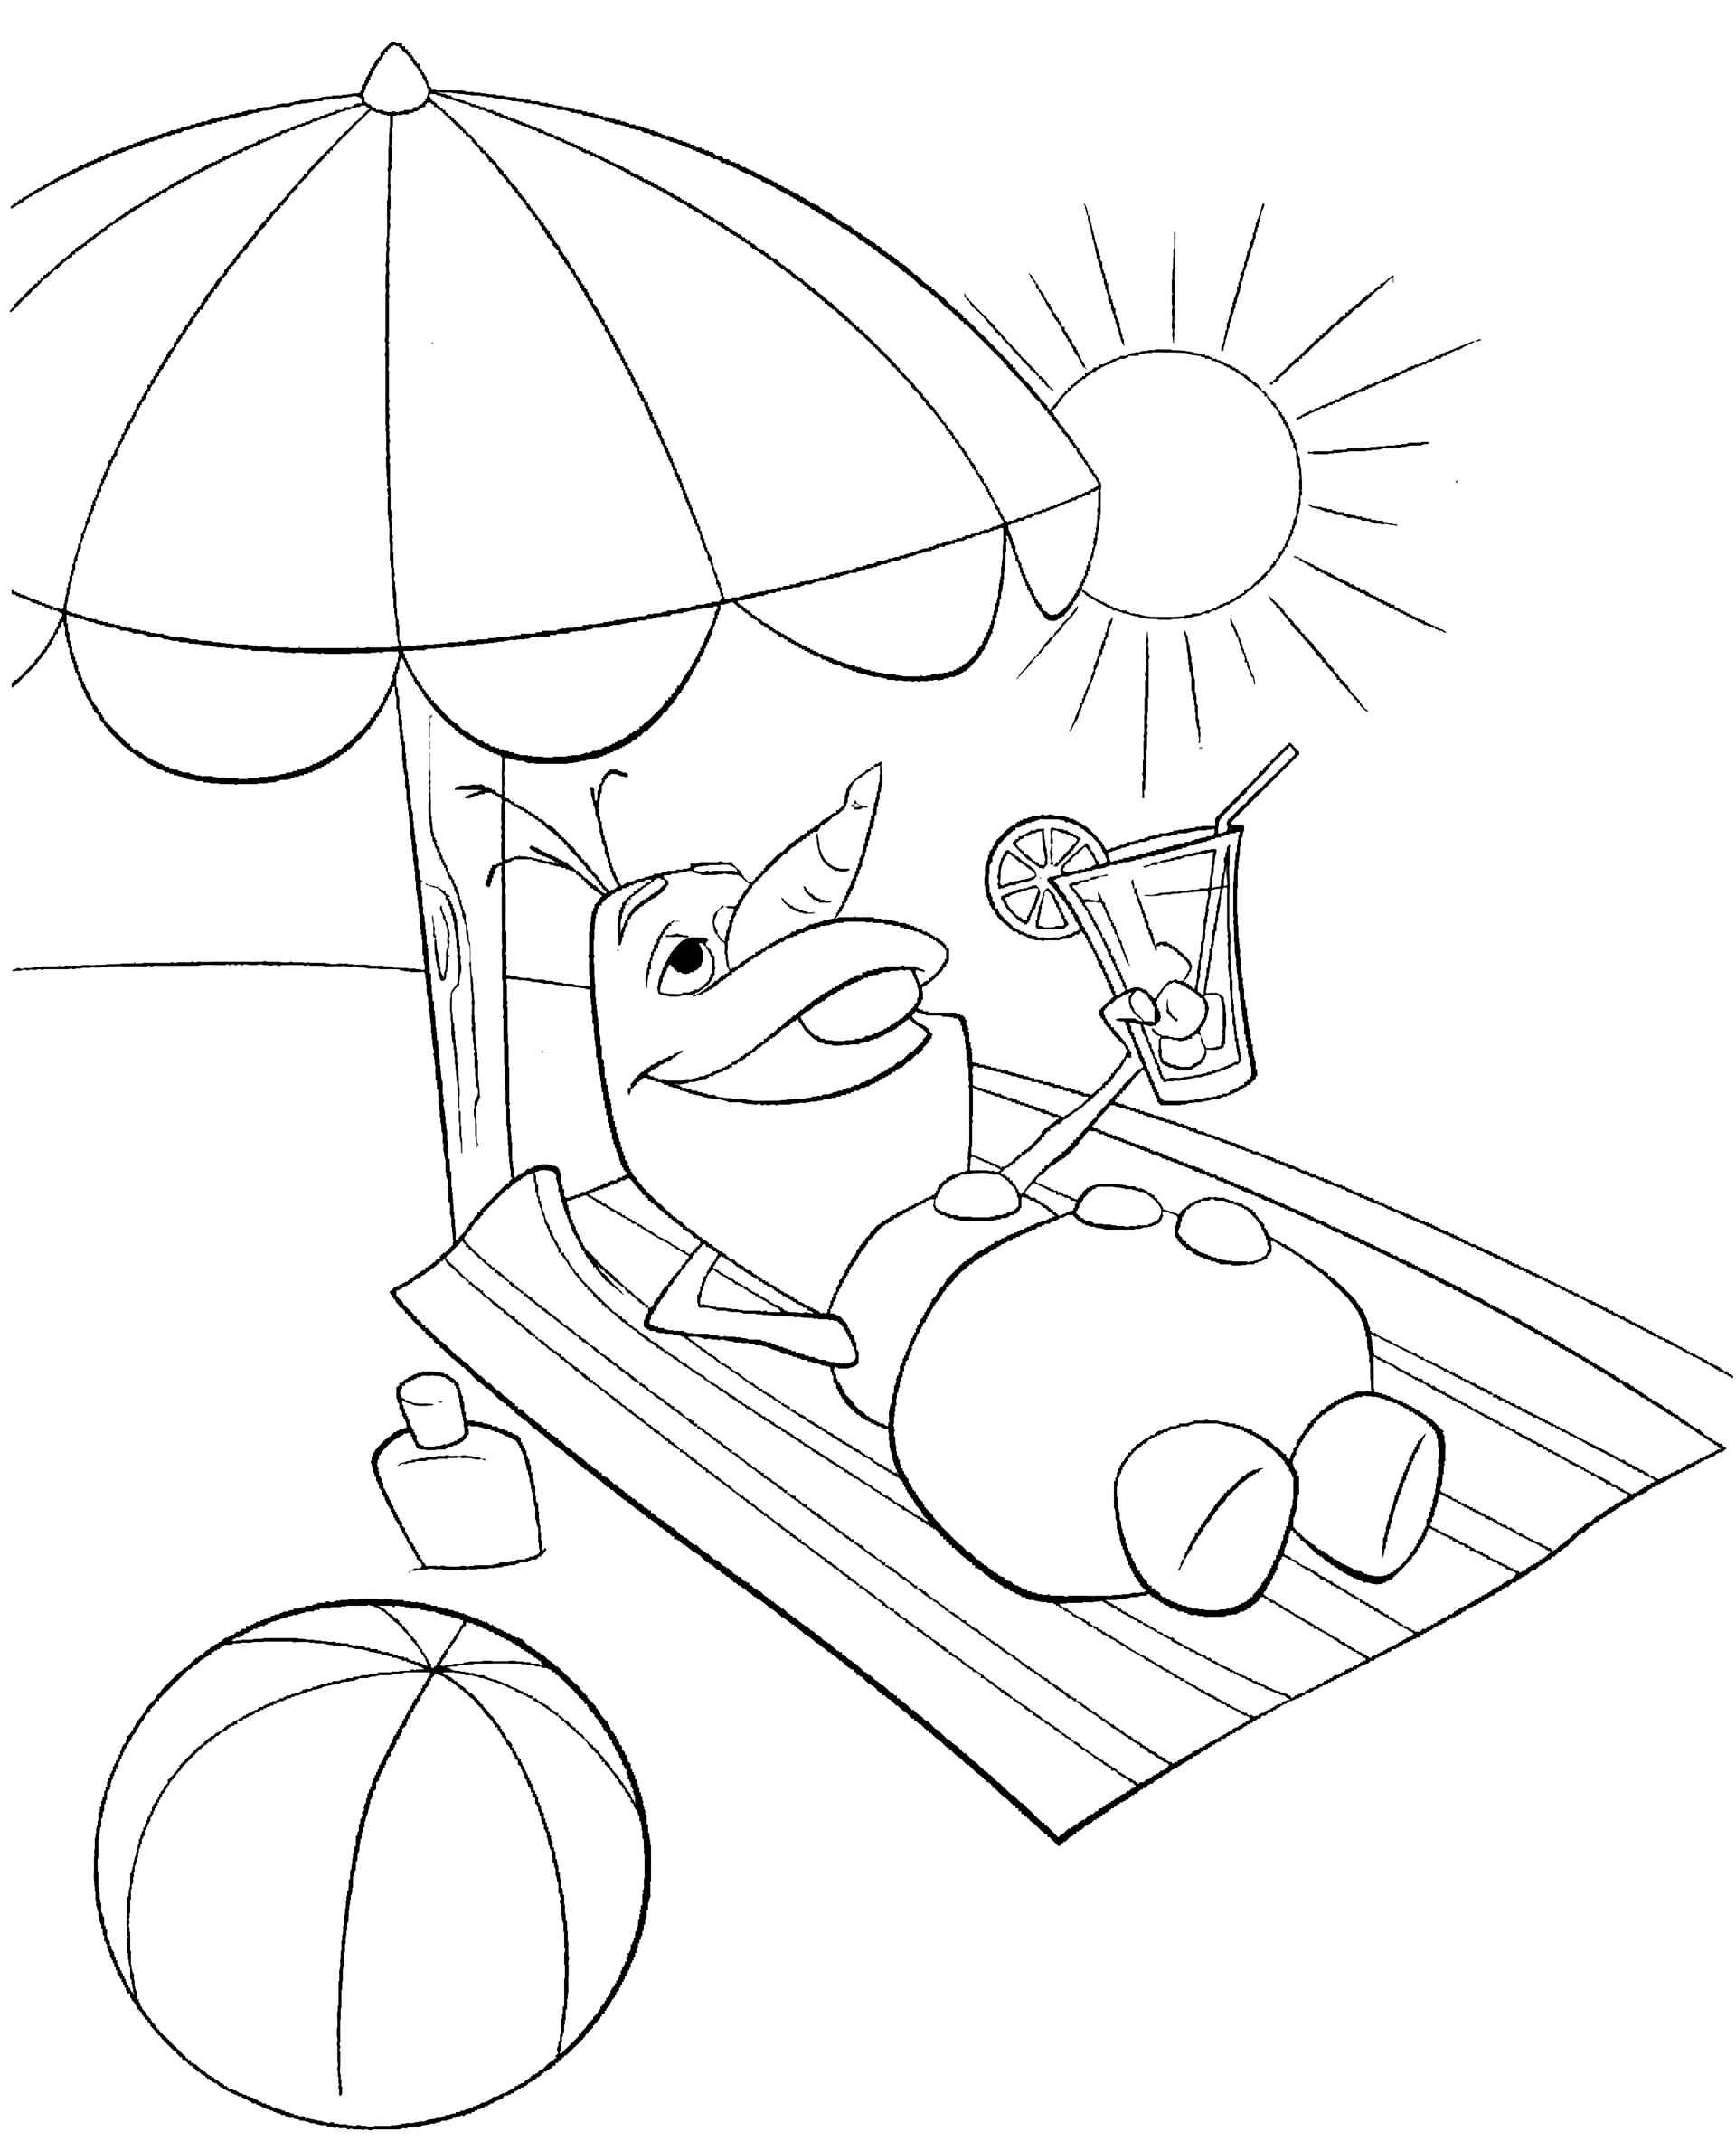 Funny Olaf Laying In The Sun Coloring Page